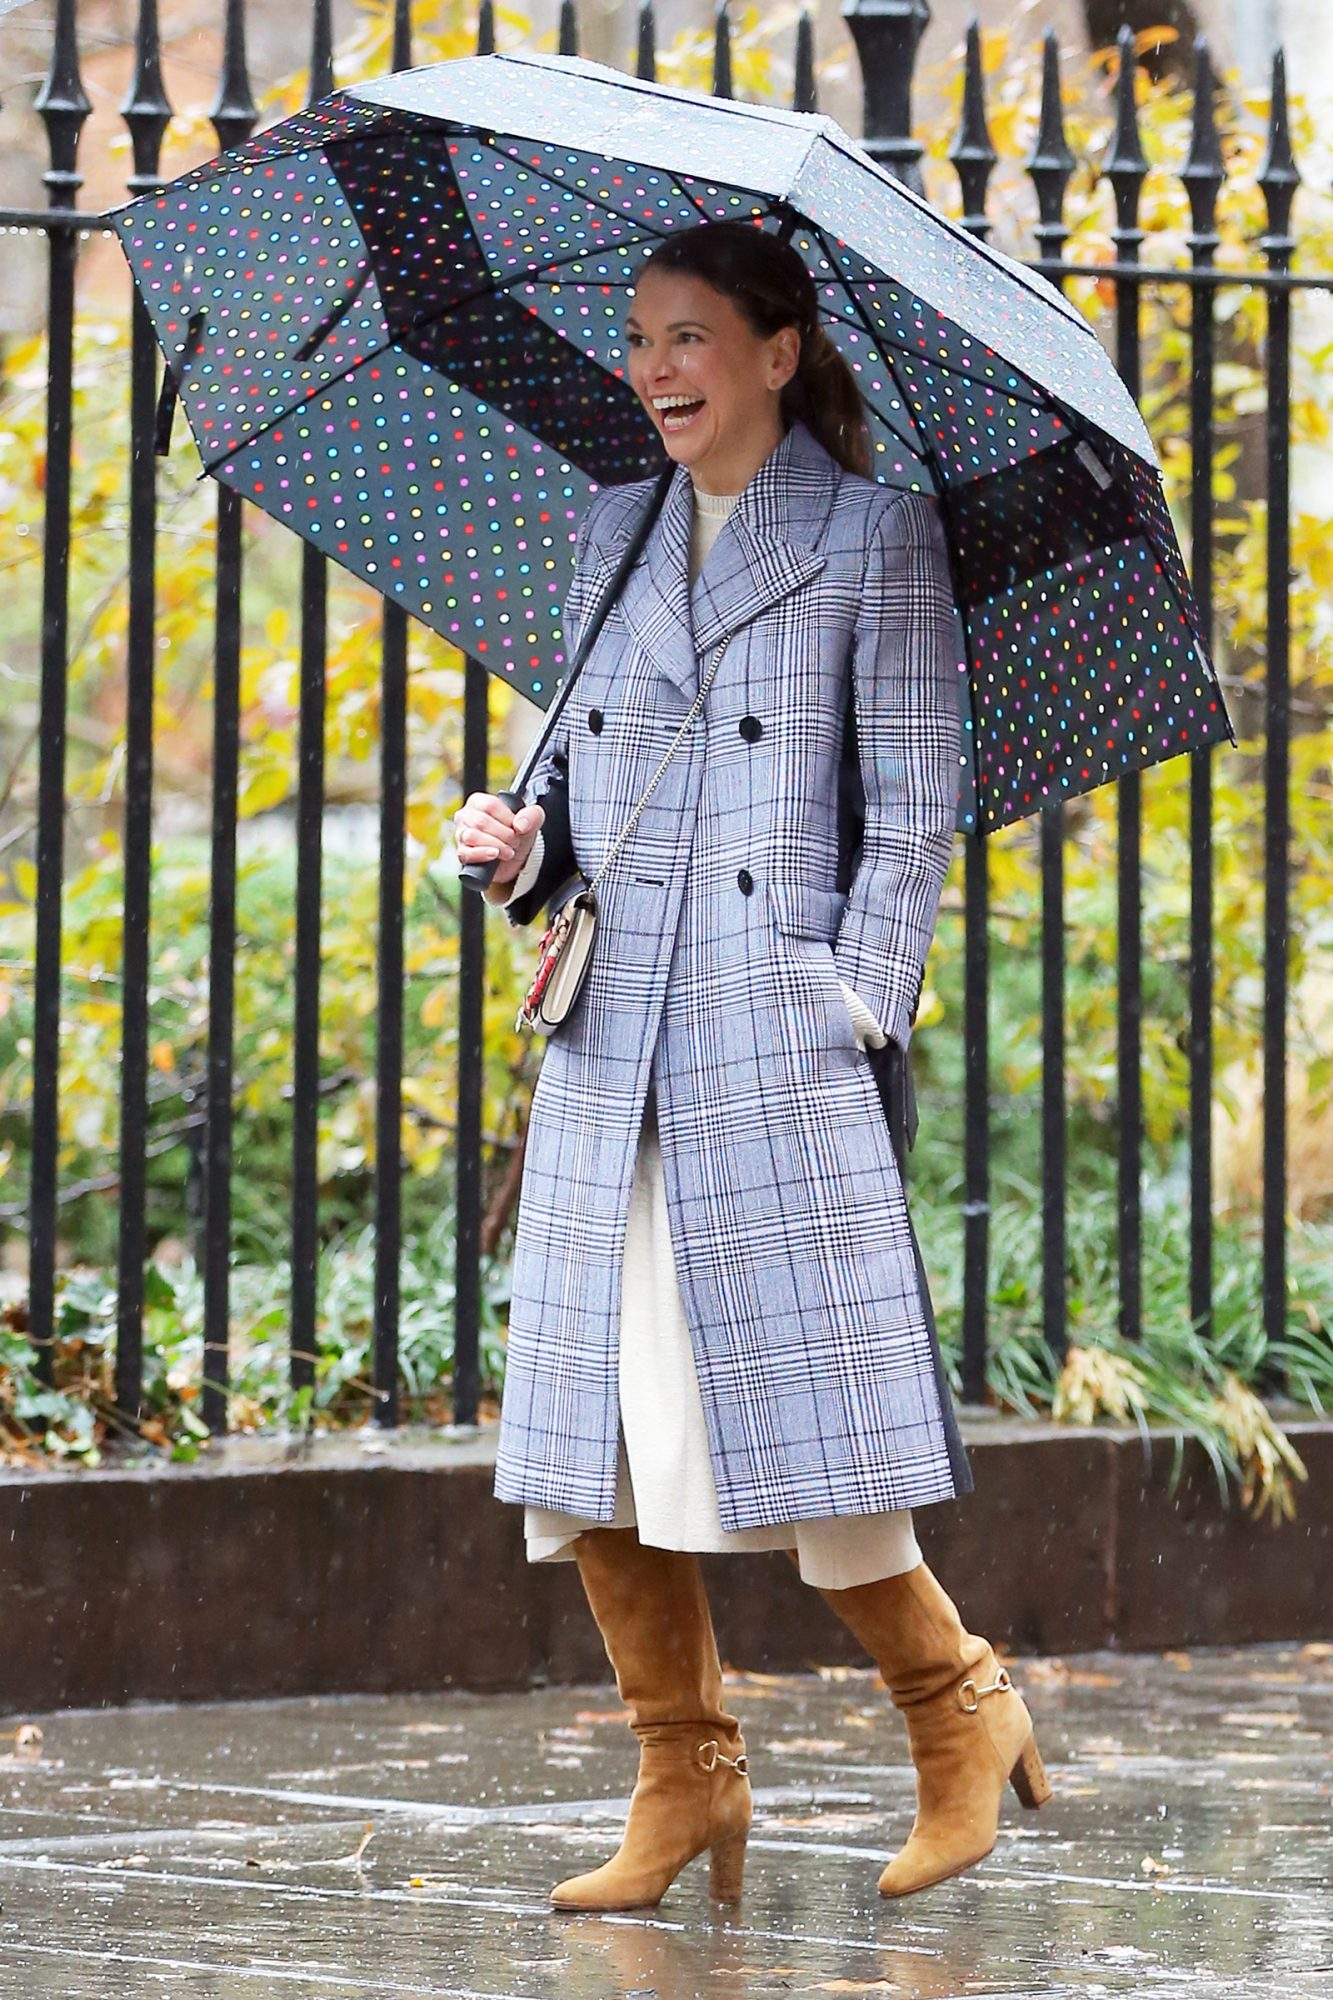 Sutton Foster And Peter Hermann Film 'Younger' Near Gramercy Park In The Rain In New York City